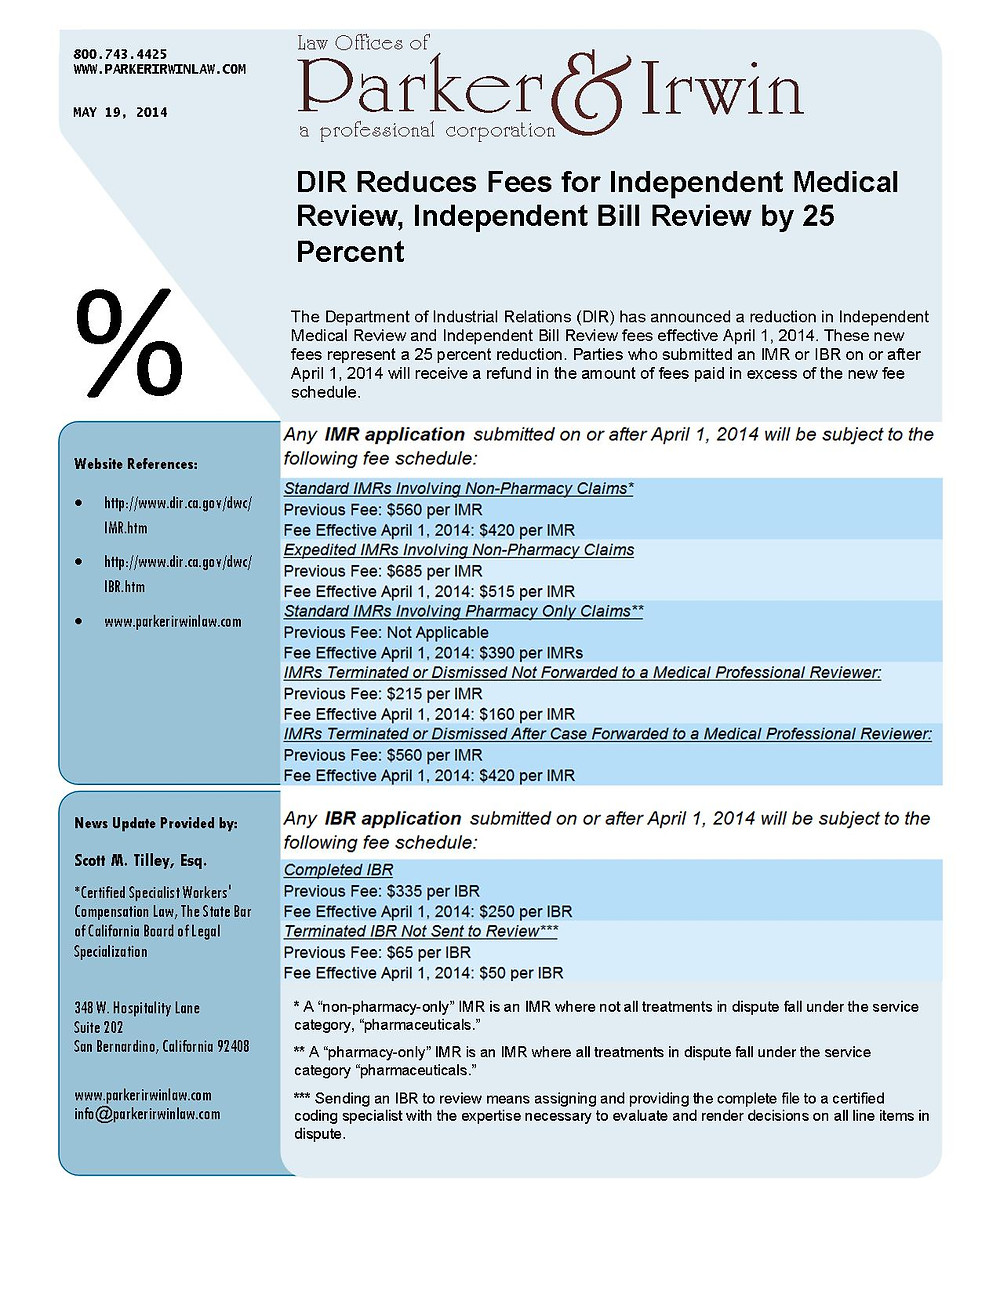 DIR Reduces Fees for IMR and IBR